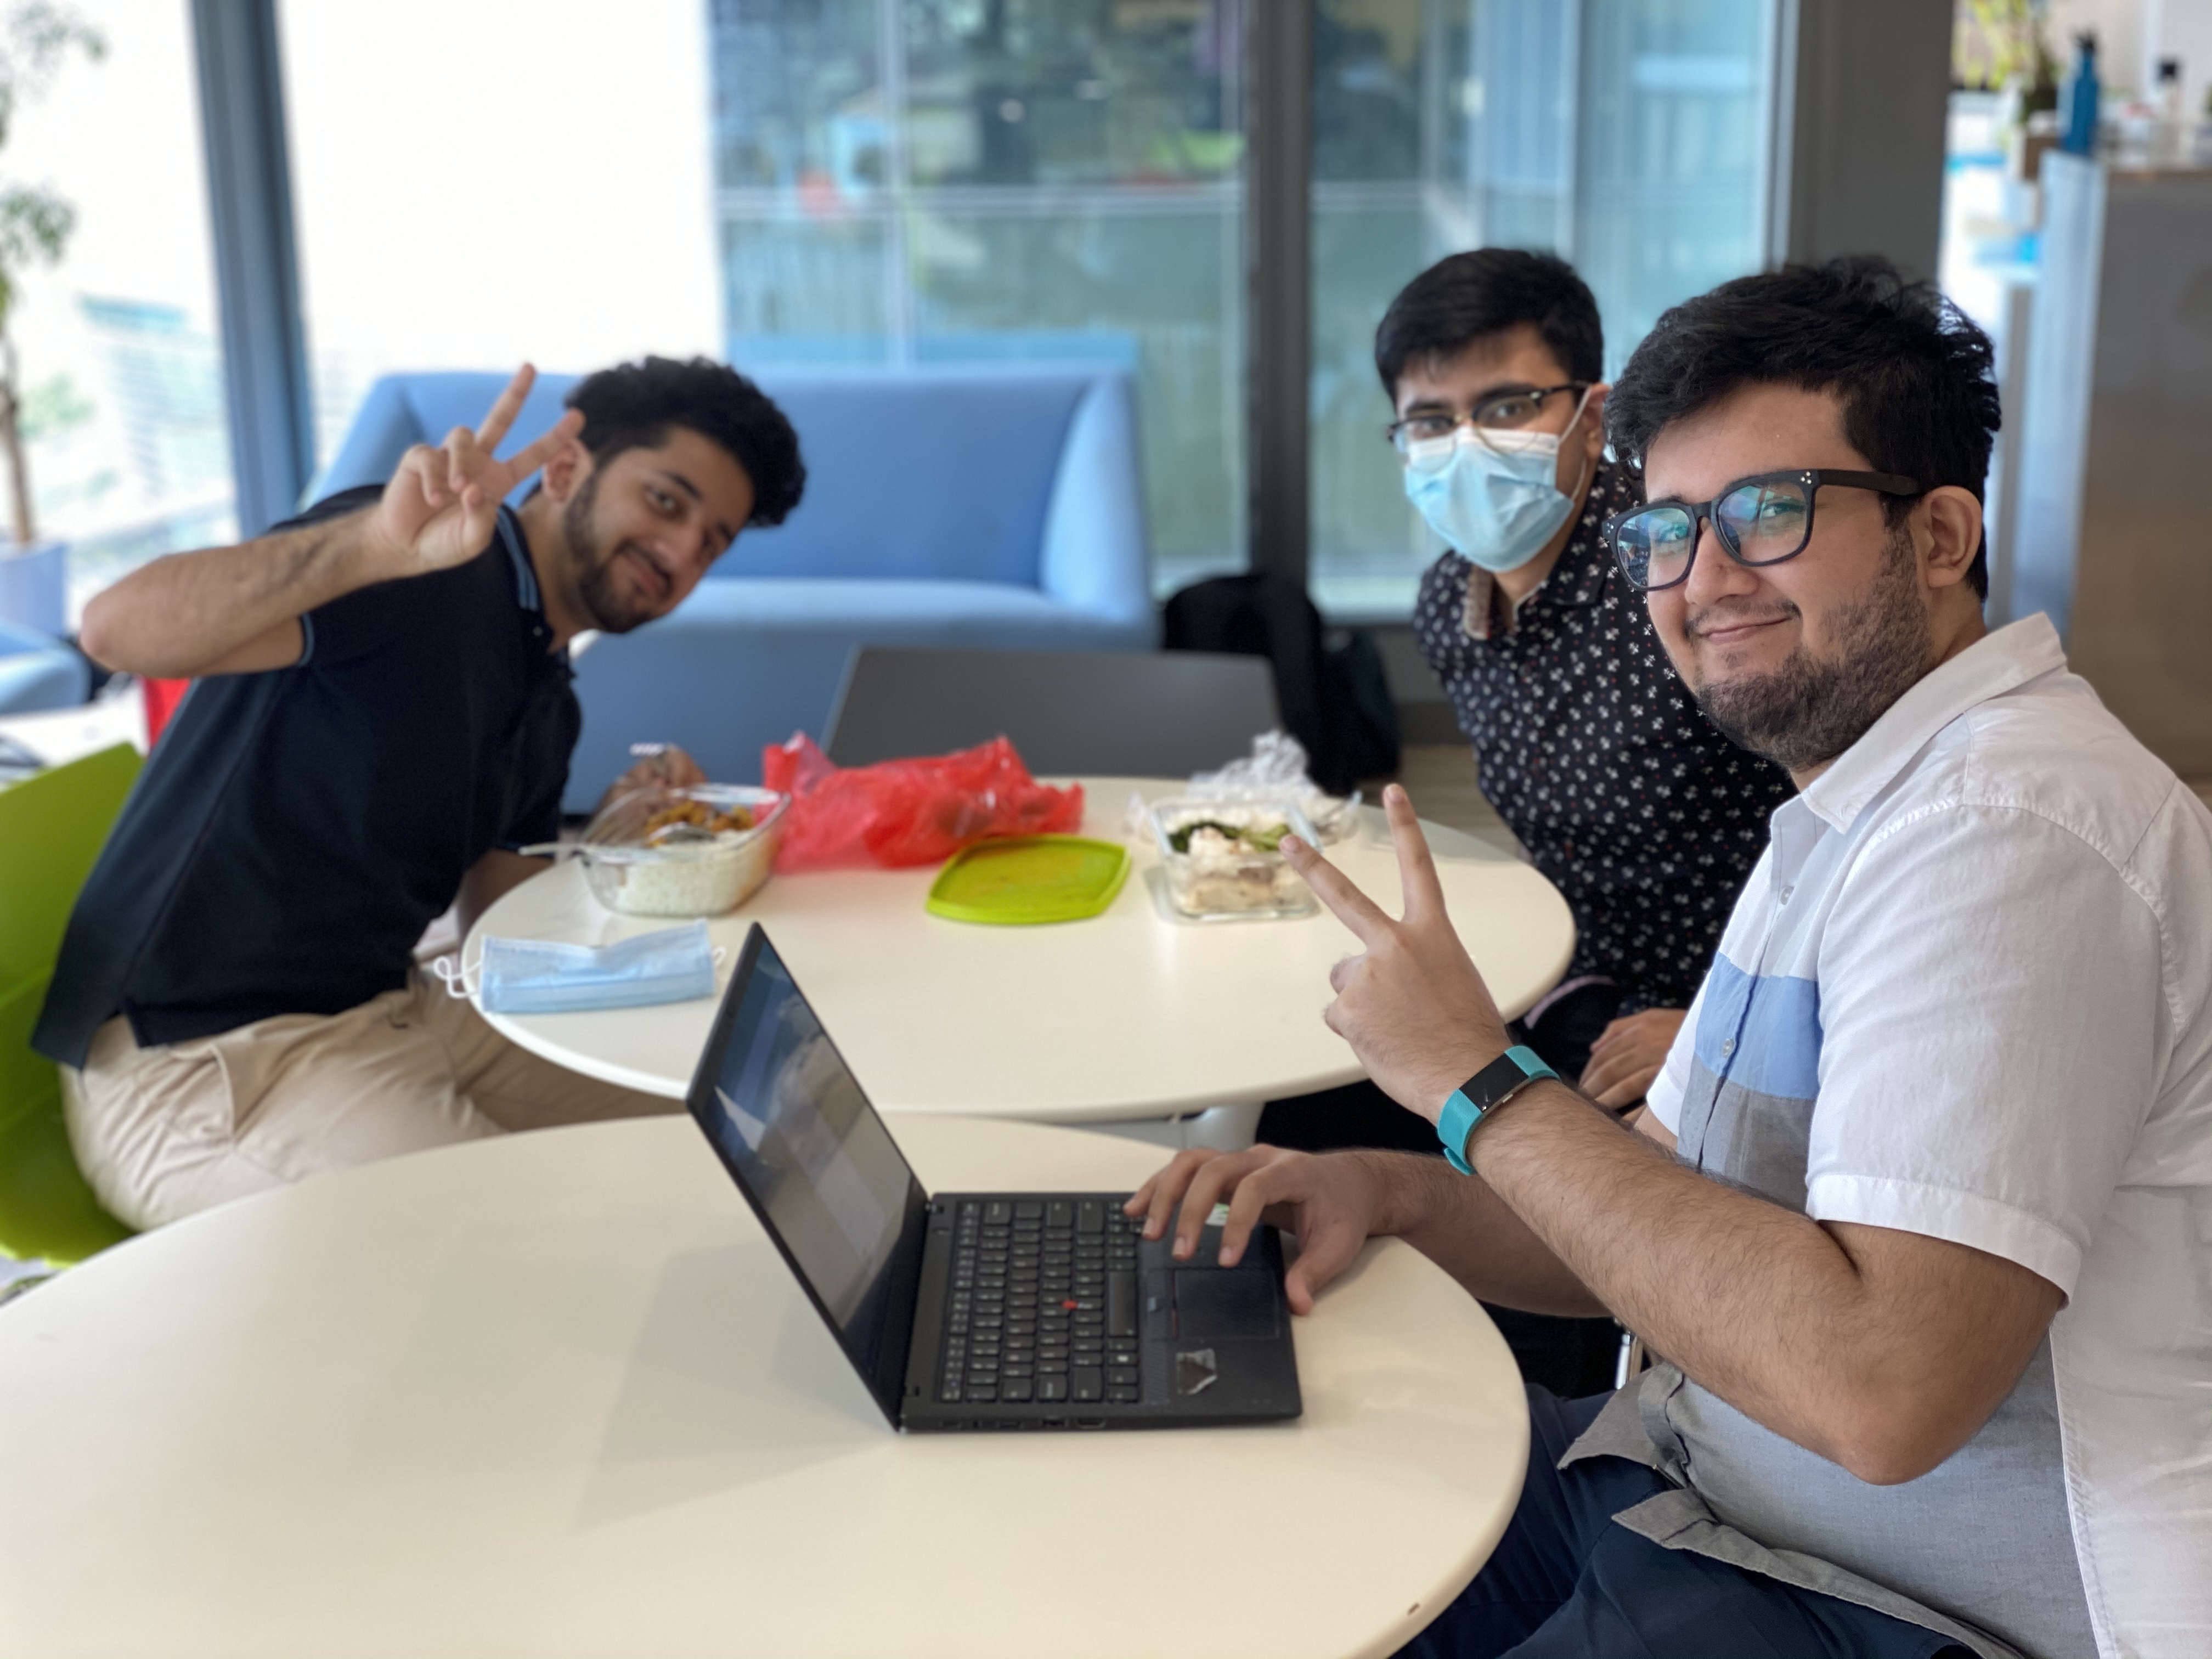 FutureNow hired three interns - all from HKUST